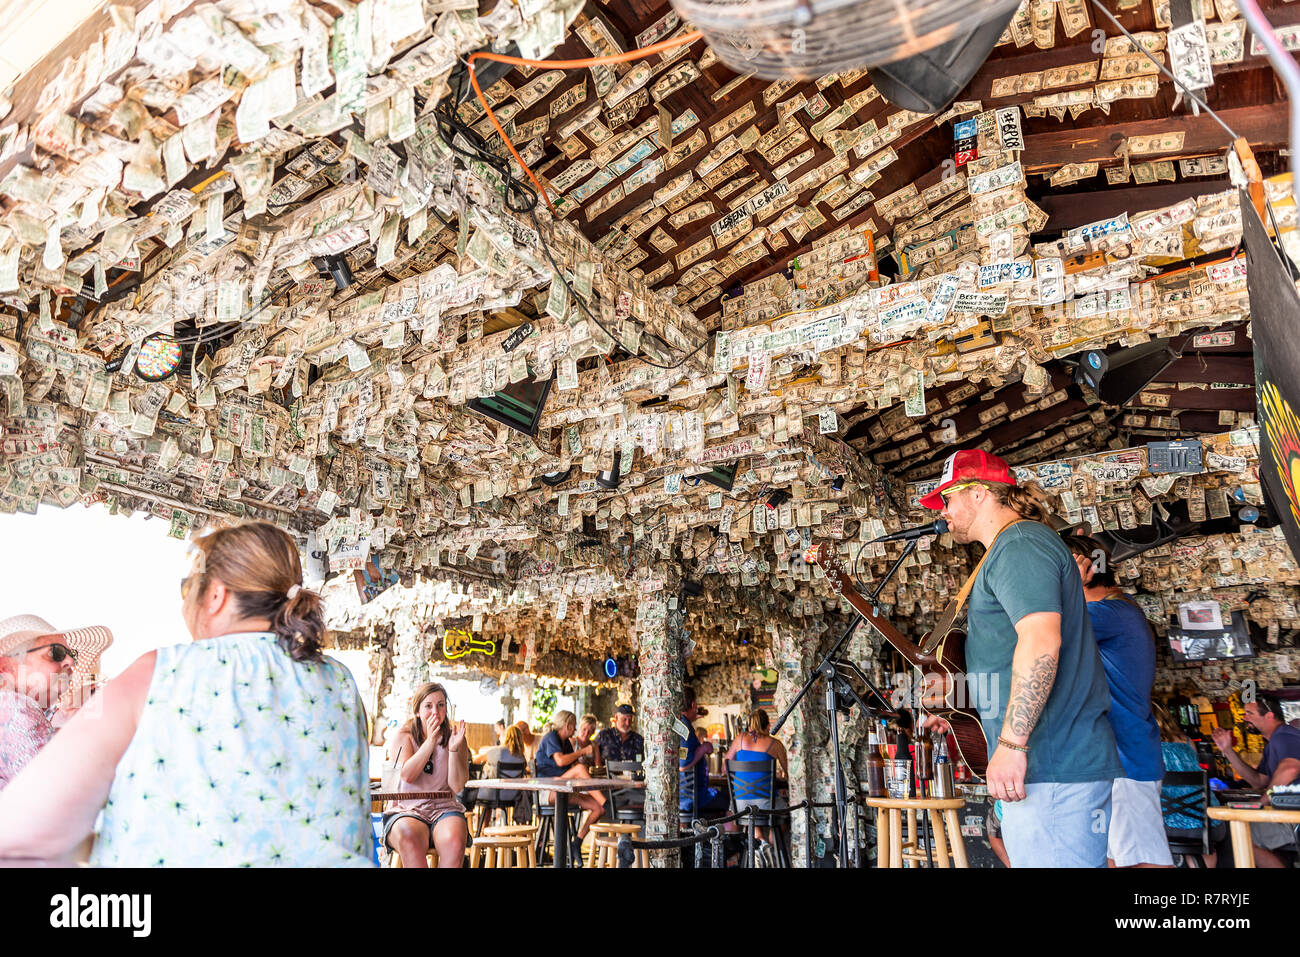 Key West, USA - May 1, 2018: Inside famous Willie T's restaurant bar sign with many dollar bills in Florida, travel, people musicians playing music Stock Photo